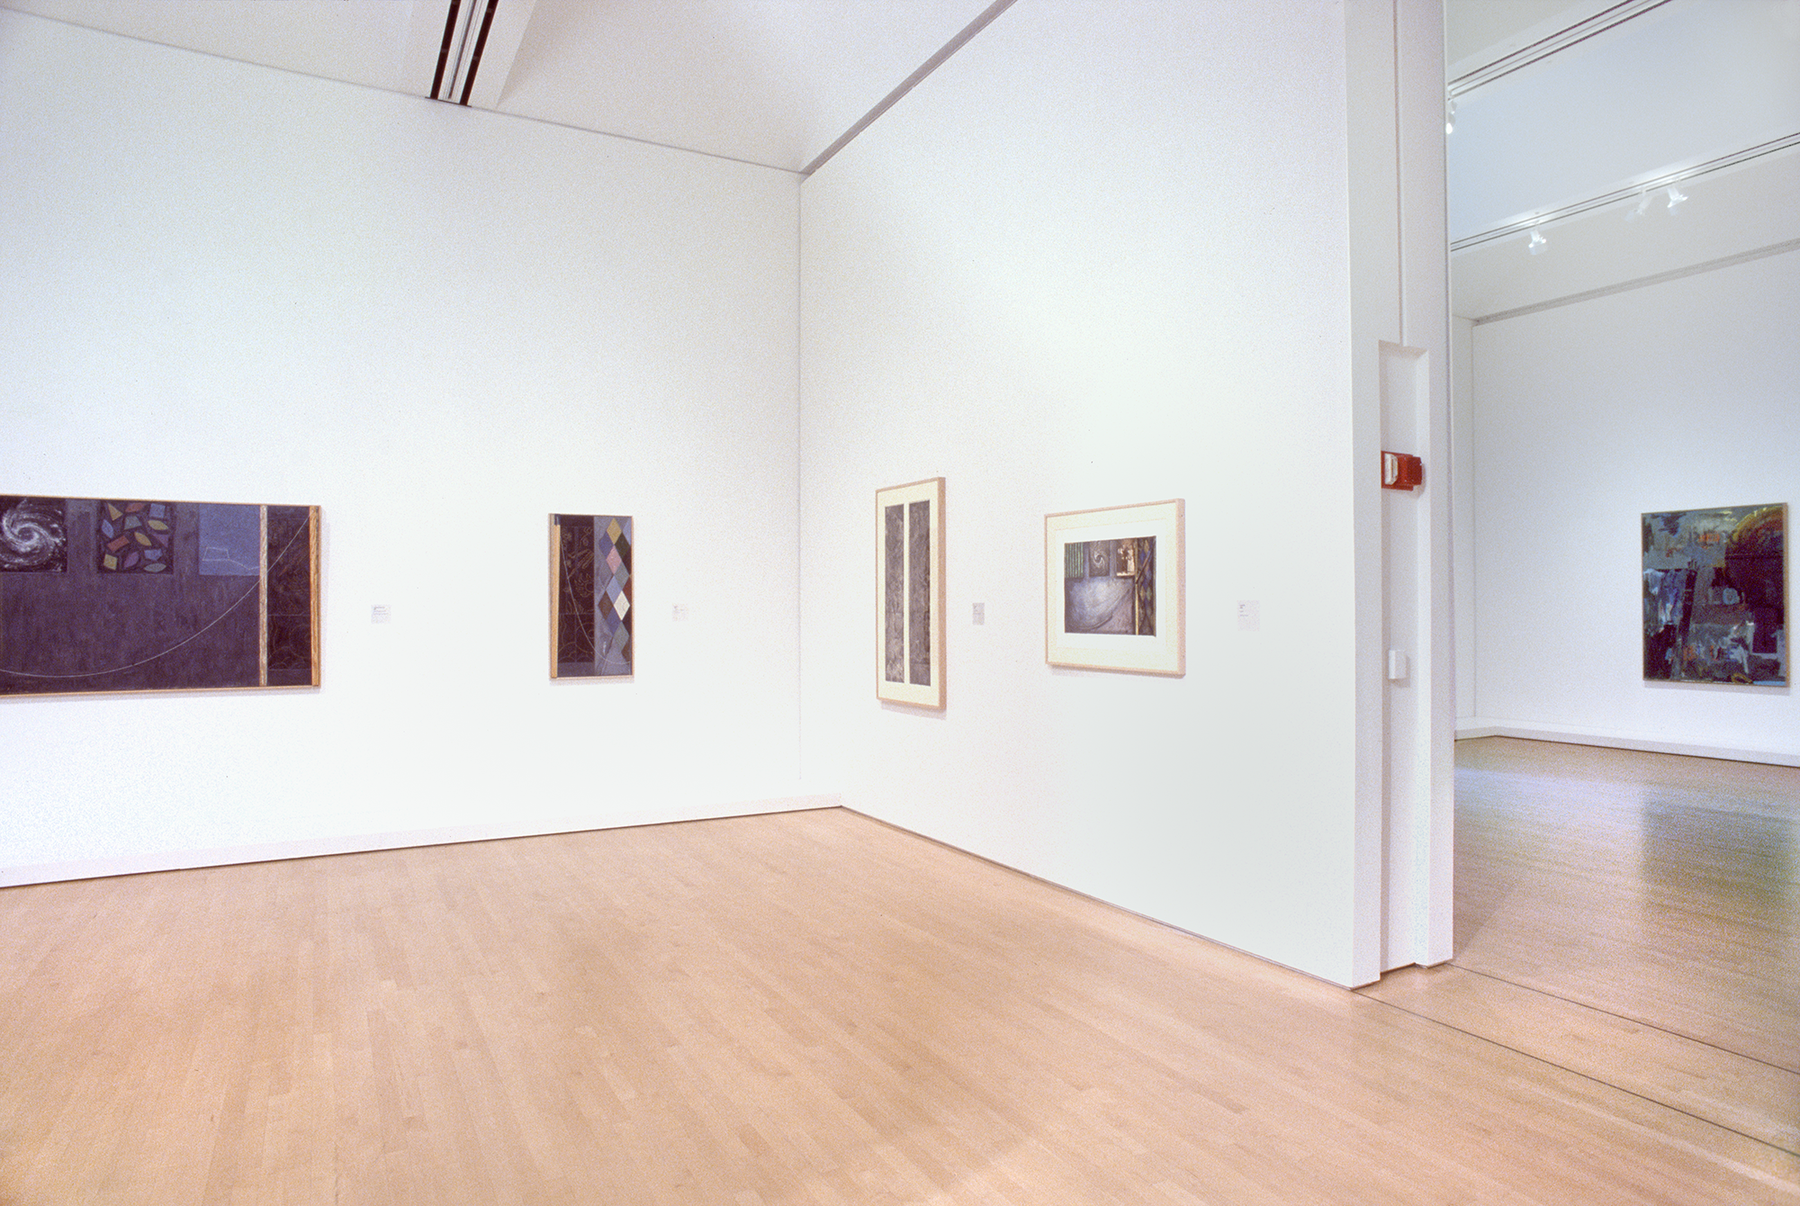 A room with several works by Jasper Johns